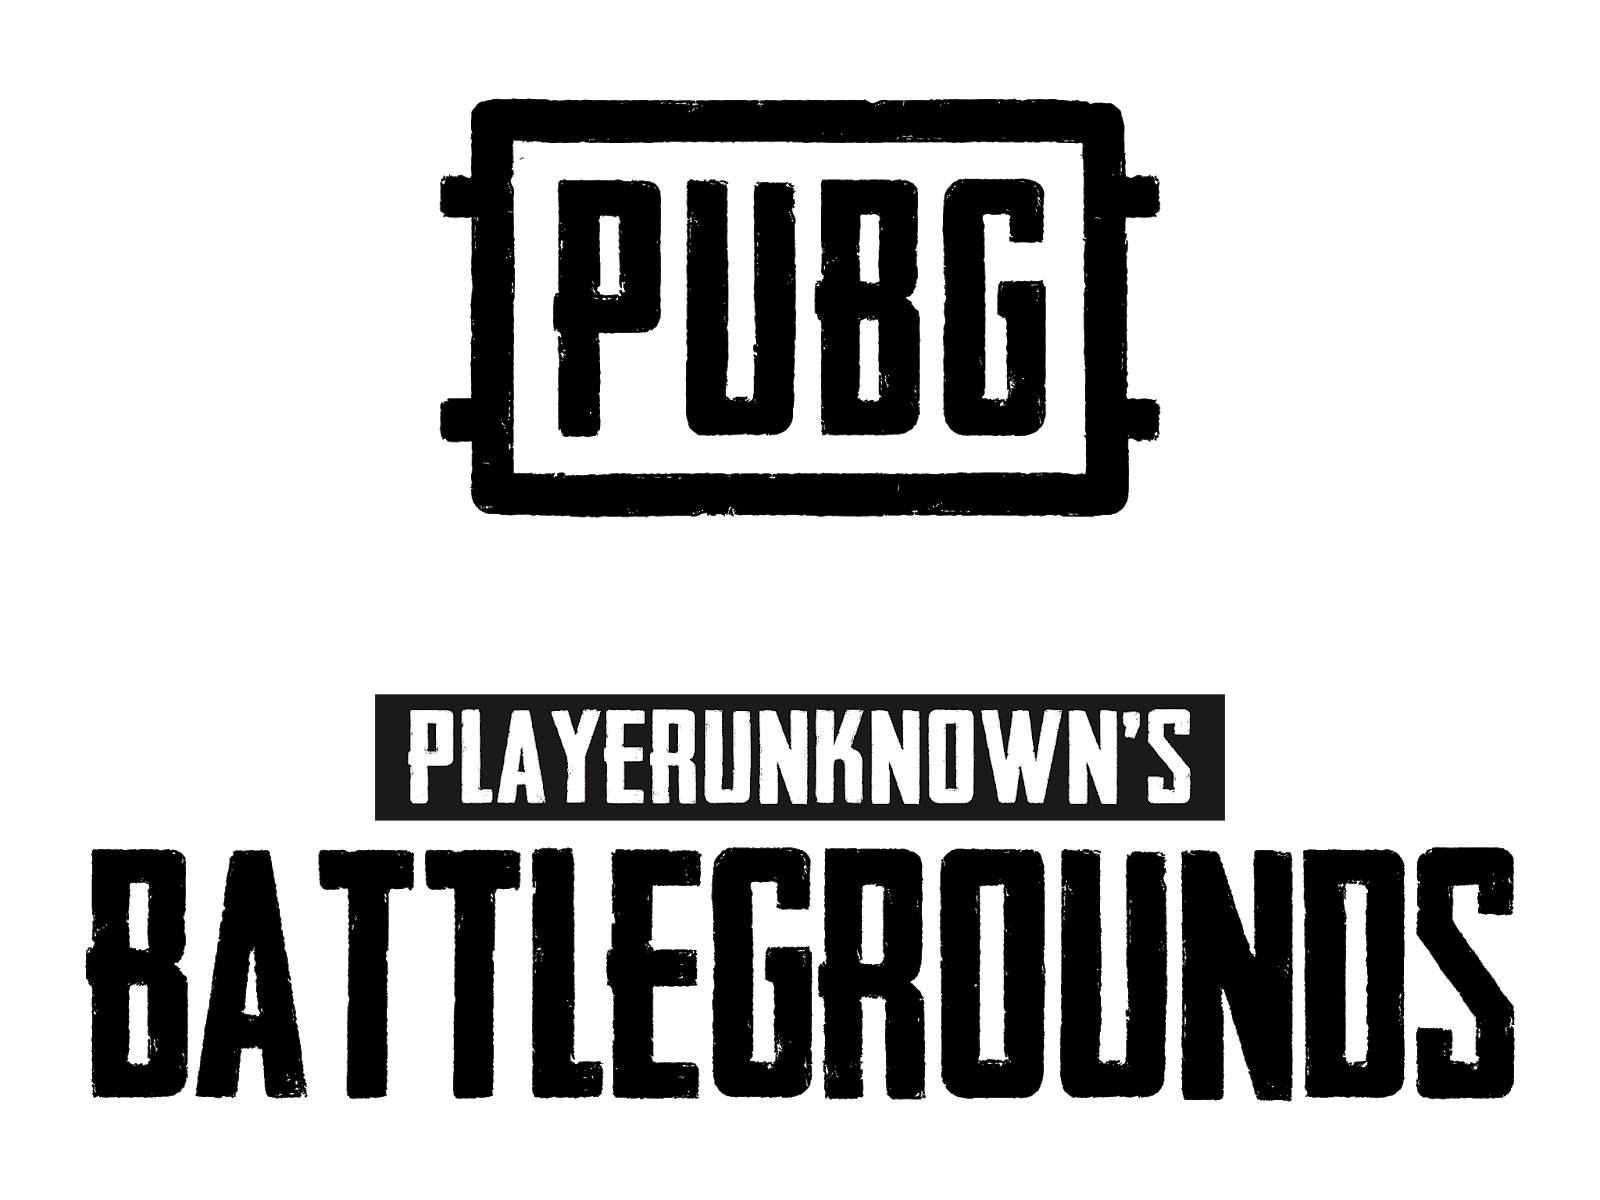 Download Vector Logo Pubg Playerunknowns Battlegrounds Cdr Png